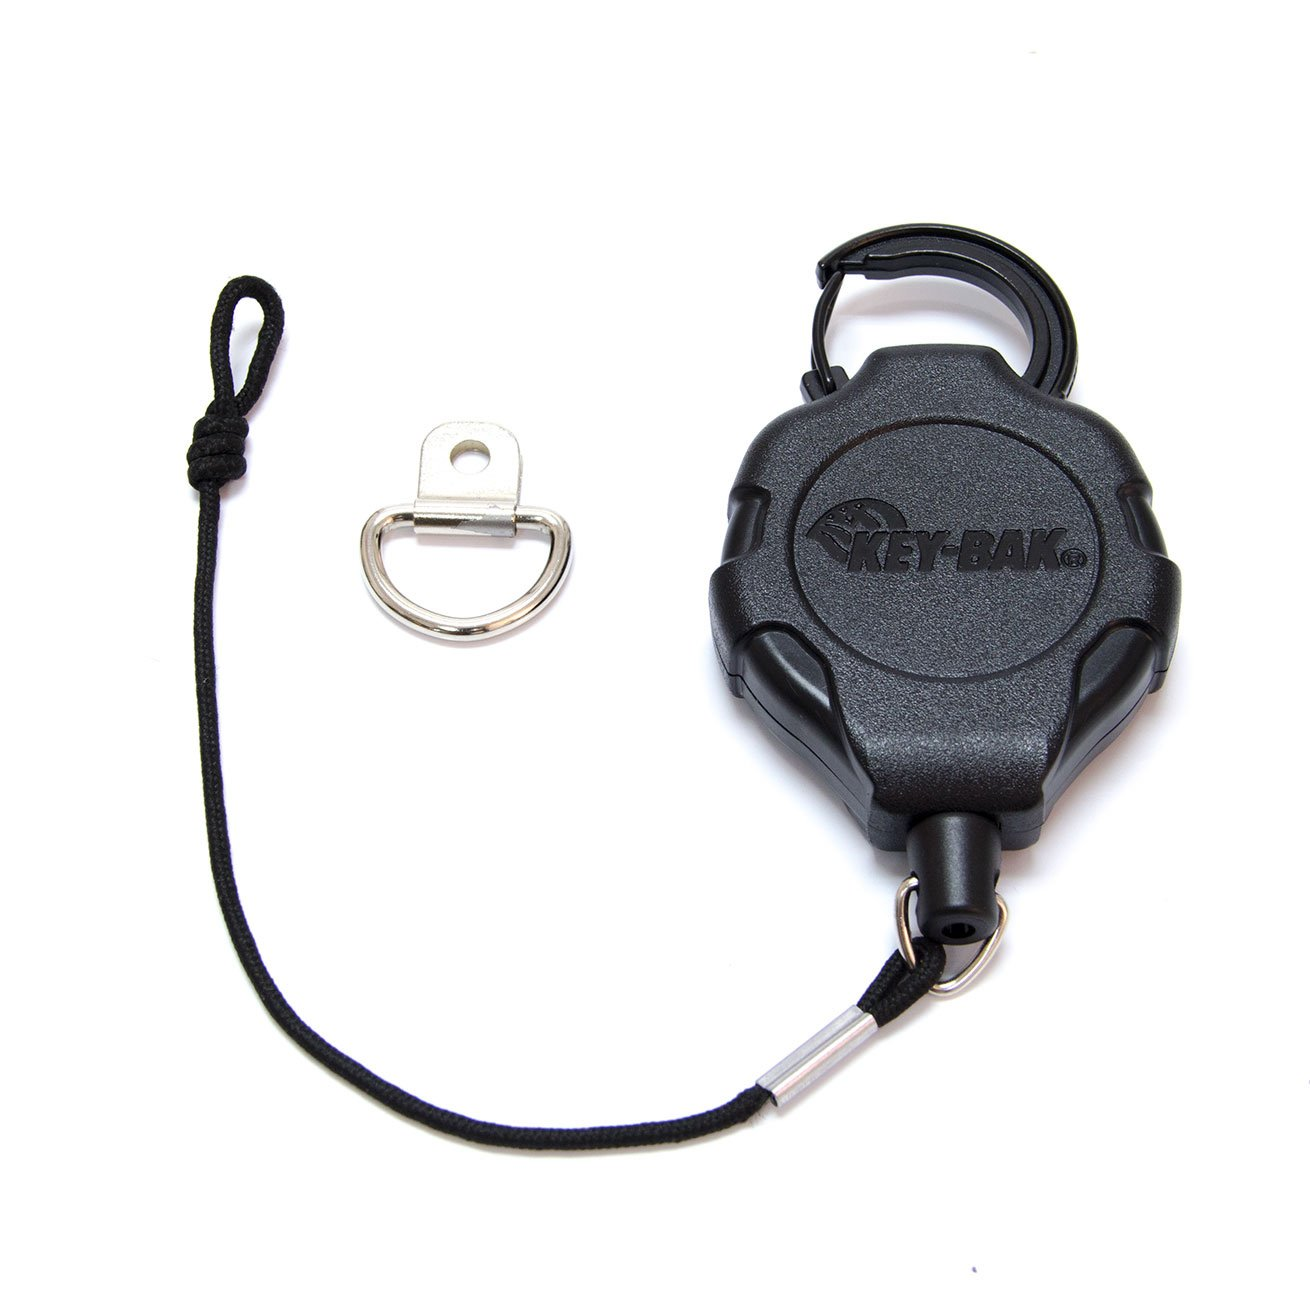 KEY-BAK MIC-BAK CB Radio Retractable Tether, 36'' Kevlar Cord, 8'' Nylon Attachment Loop, D-Ring Mount Included